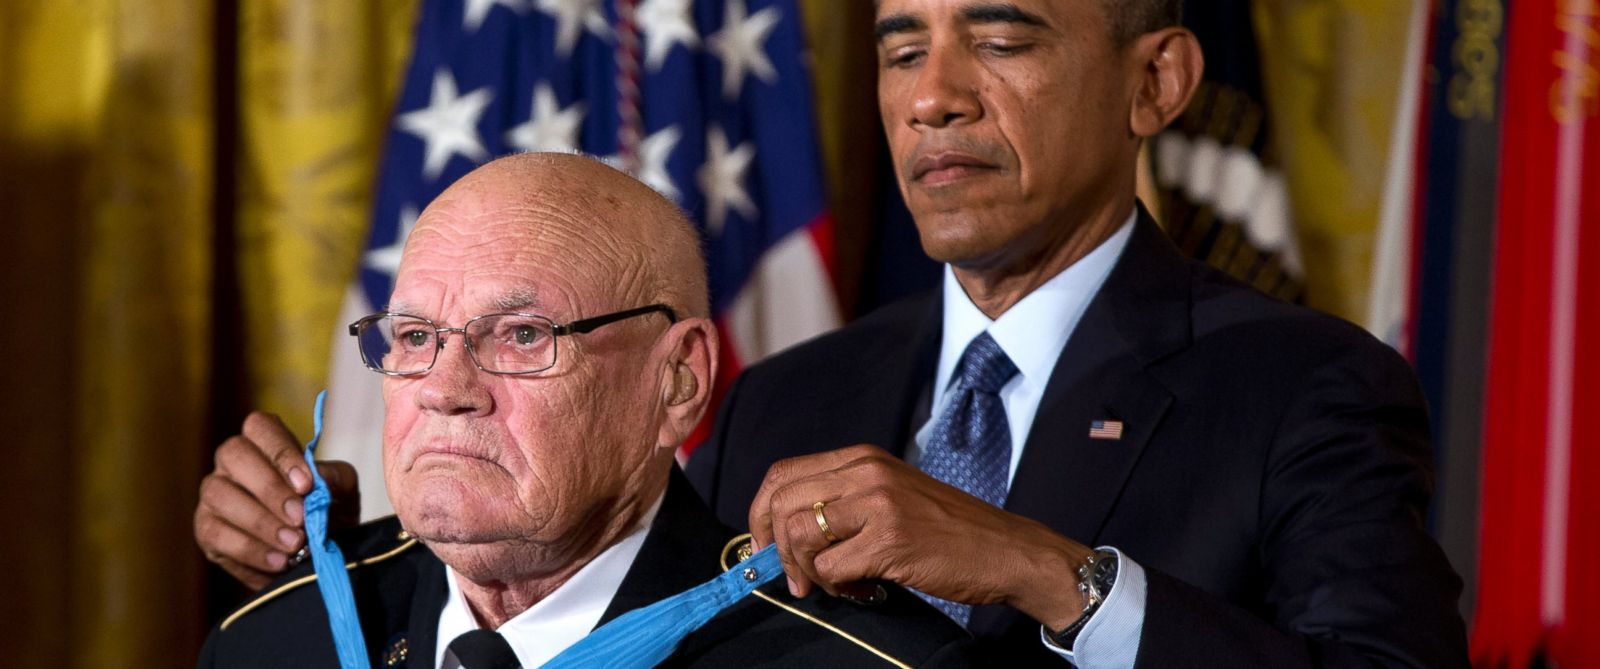 PHOTO: President Barack Obama bestows the Medal of Honor on retired Army Command Sgt. Maj. Bennie G. Adkins in the East Room of the White House in Washington, Sept. 15, 2014.